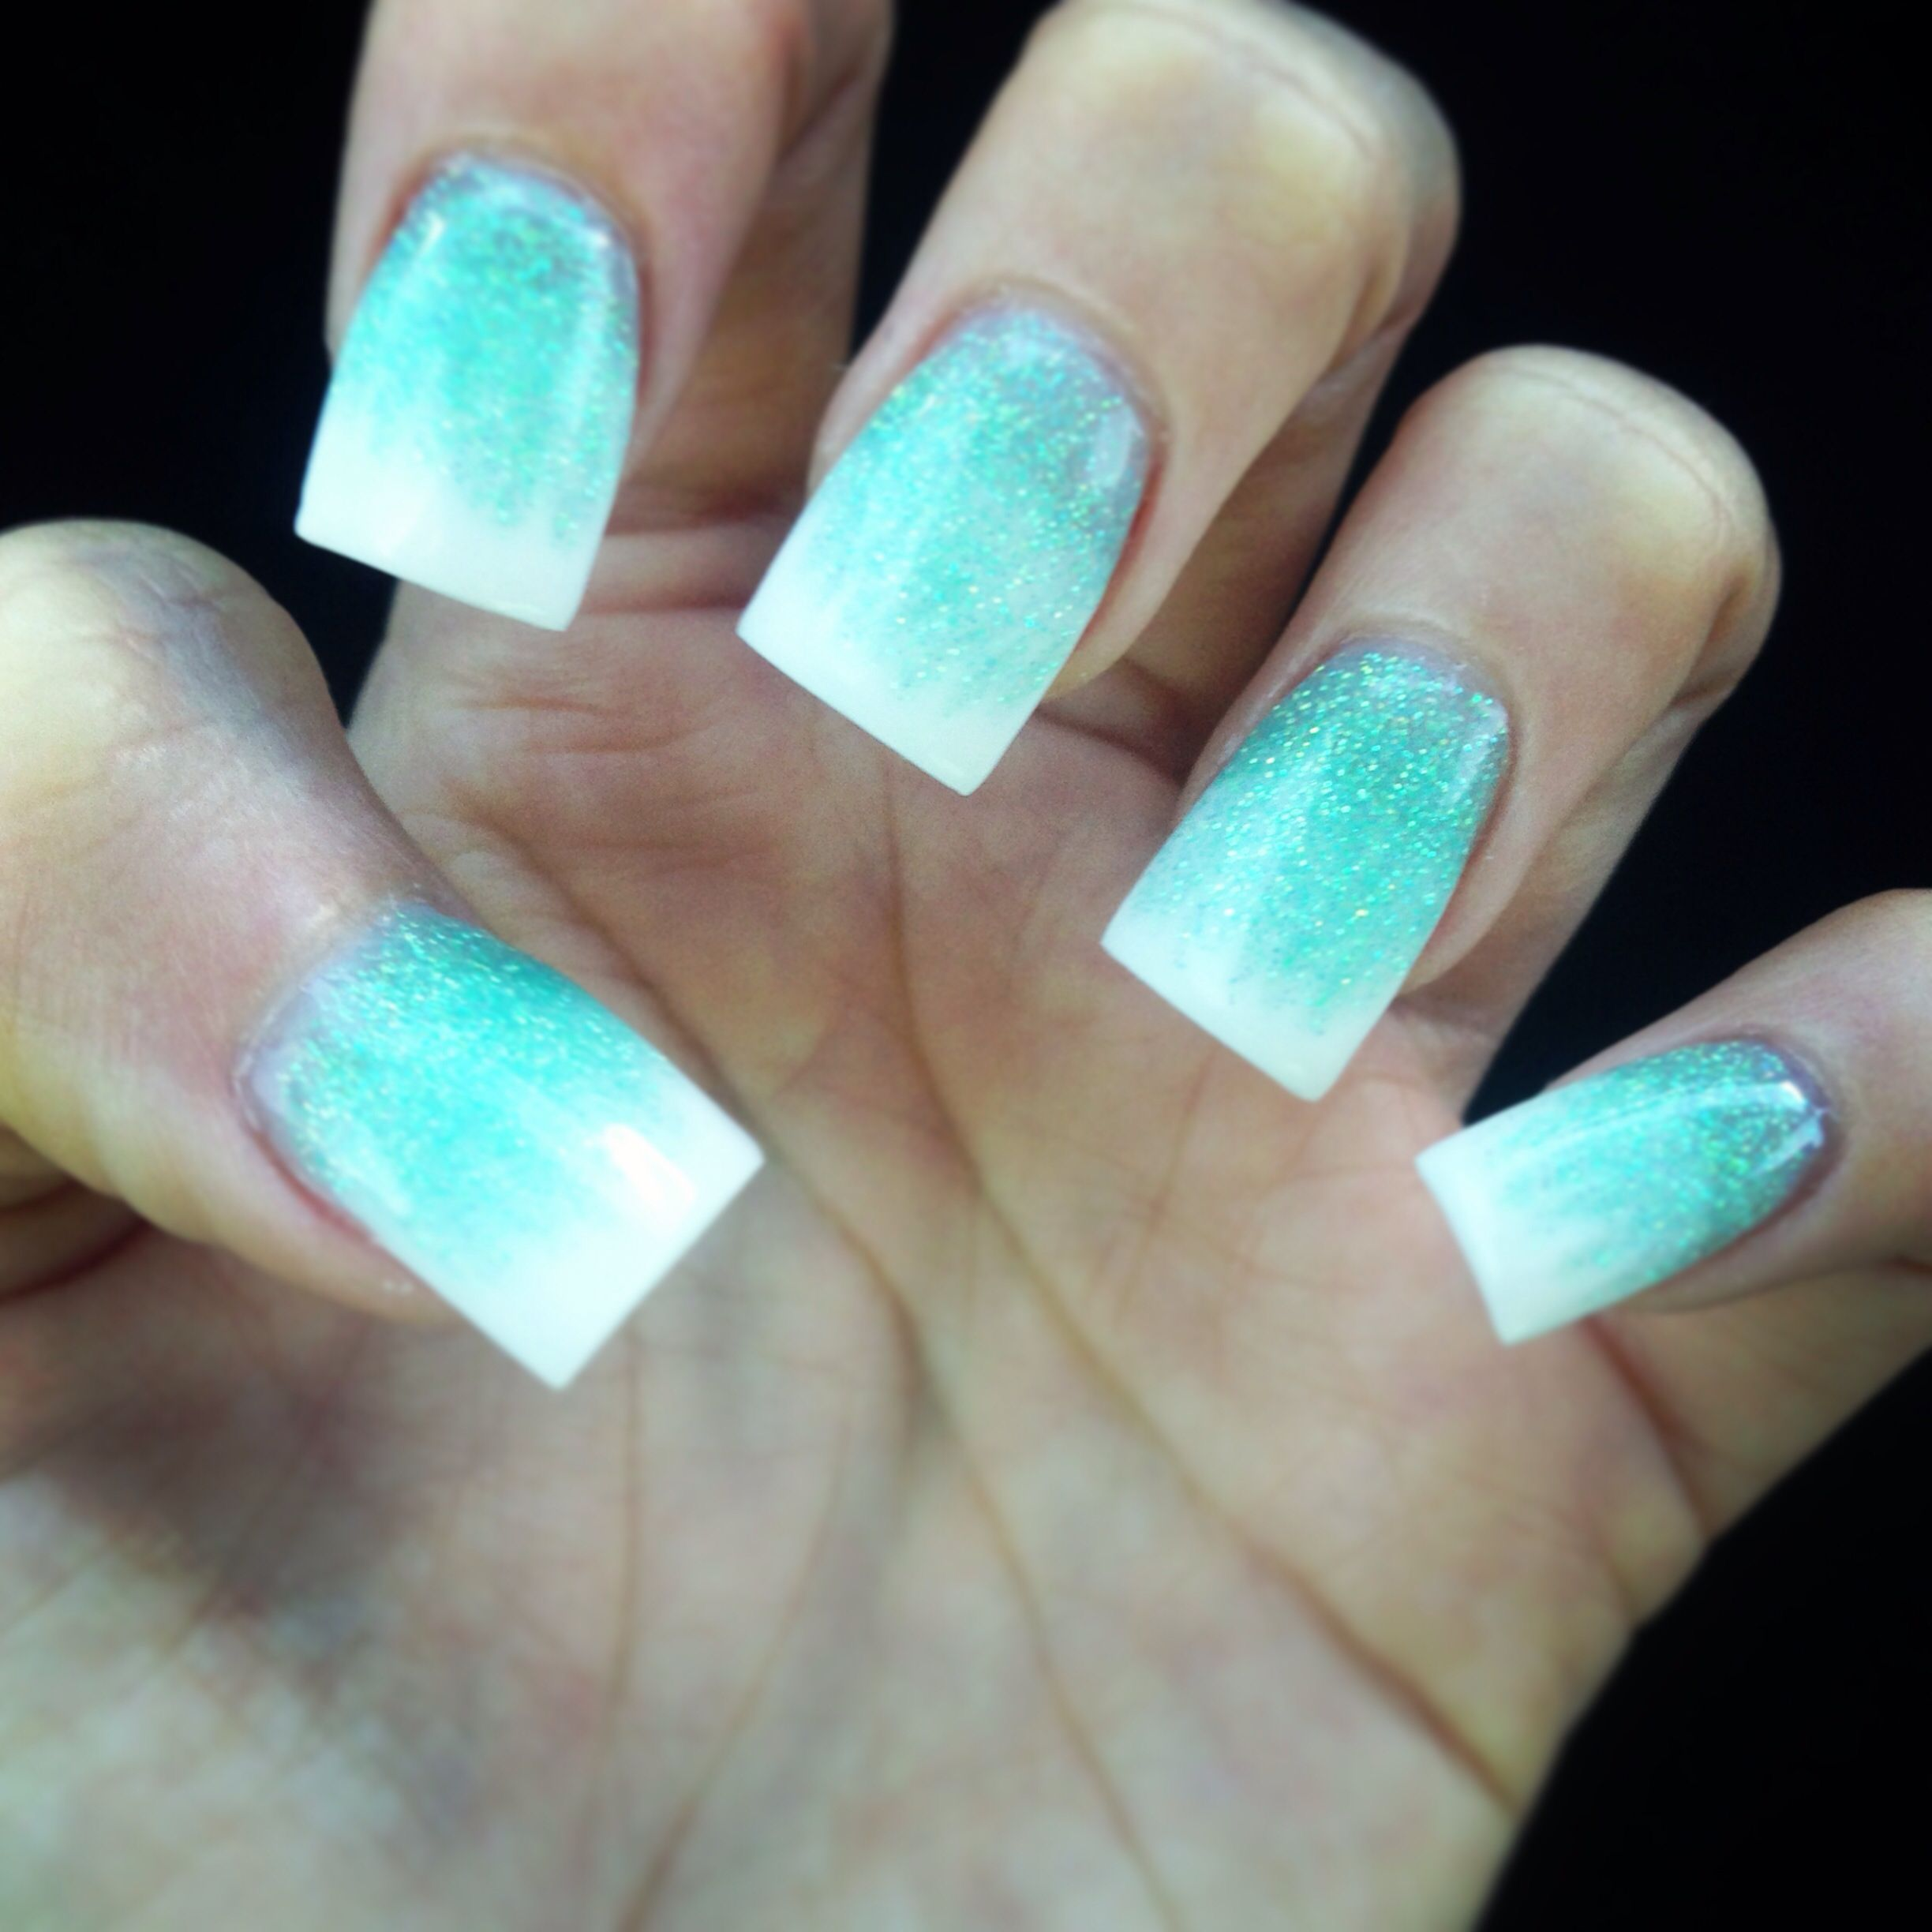 tiffany blue and white ombré acrylic nails | nailscao